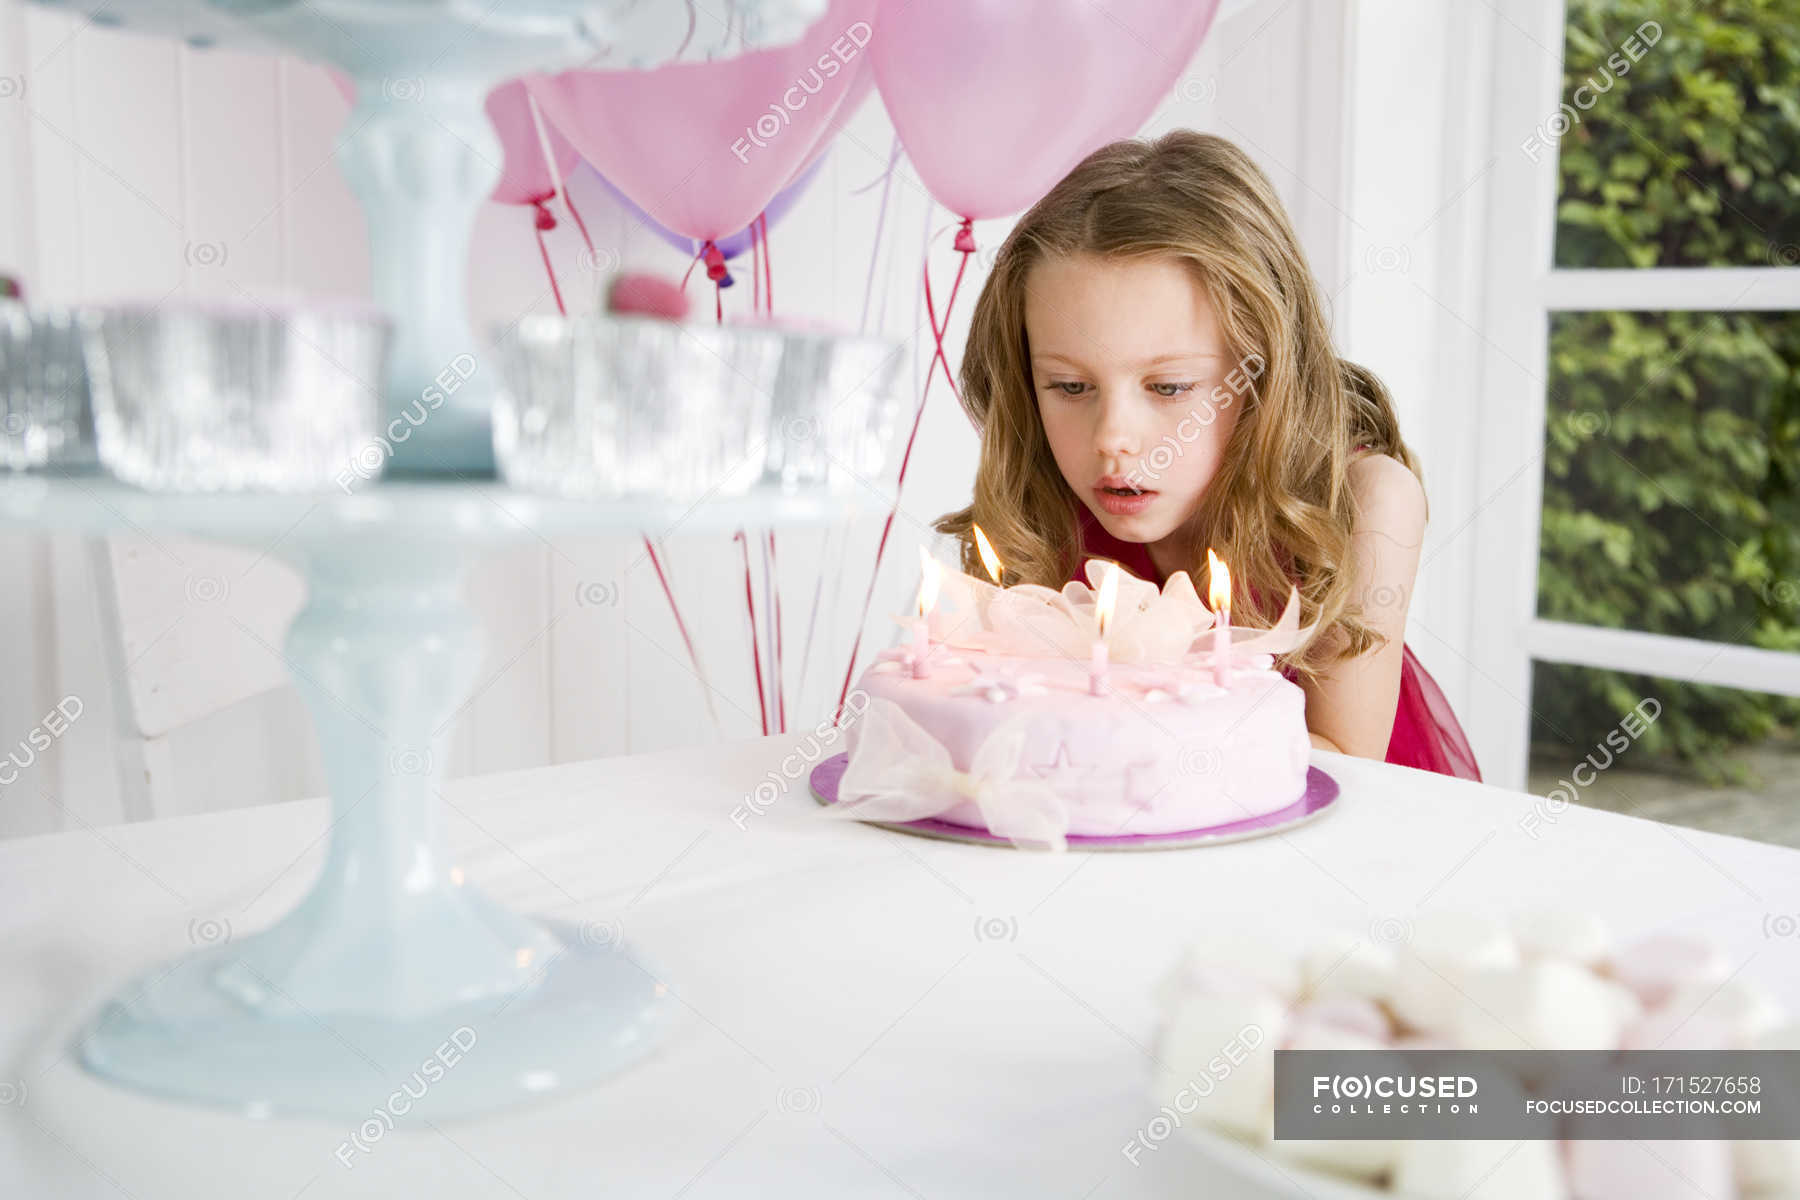 Girl Blowing Candles On Birthday Cake Selective Focus Facial